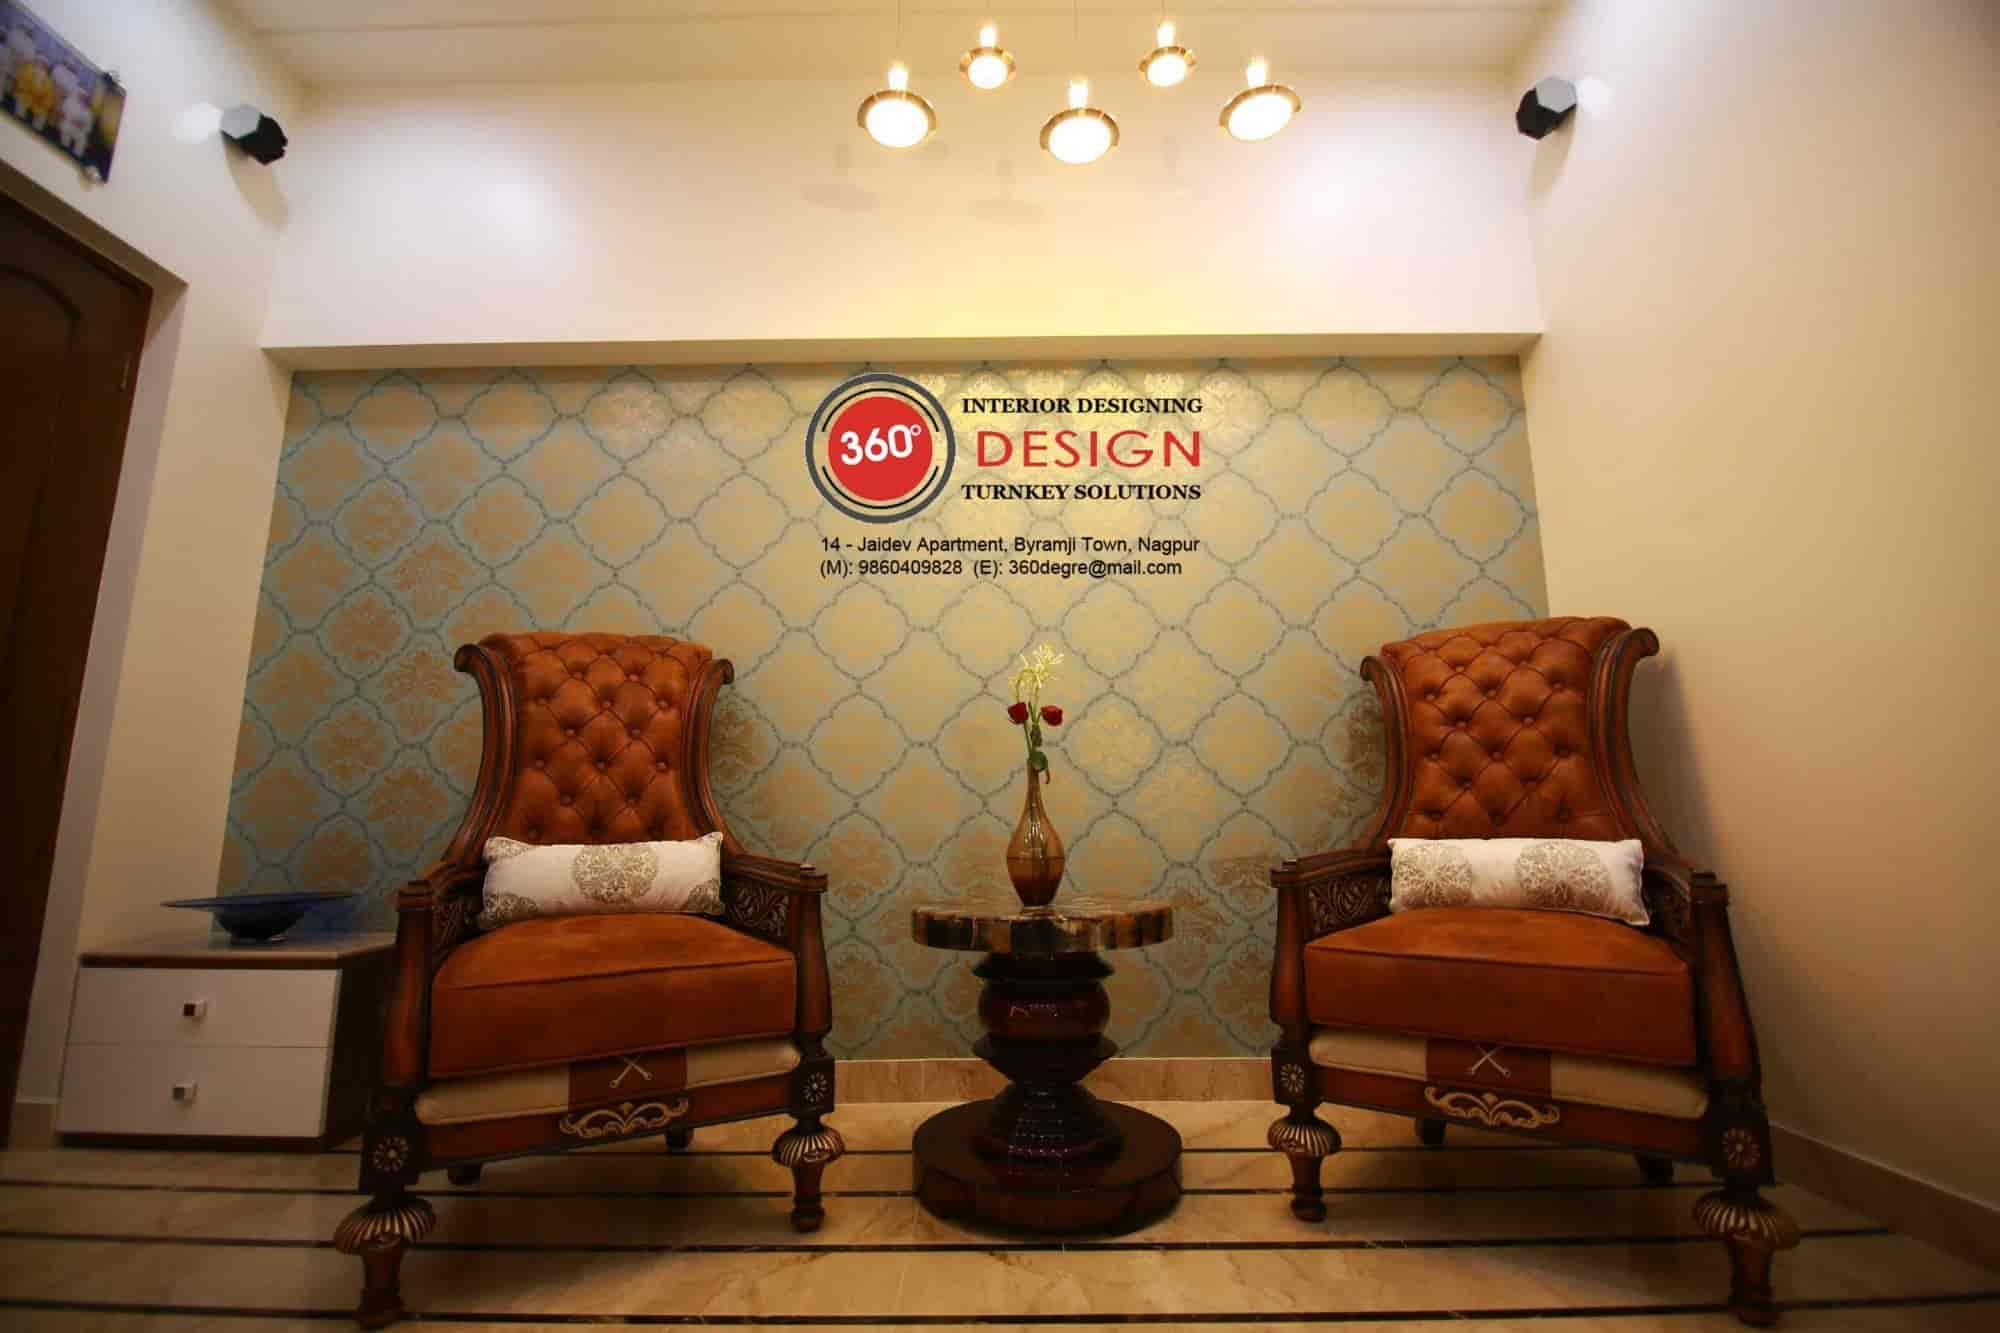 360 Degree Design Photos Byramji Town Nagpur Pictures Images